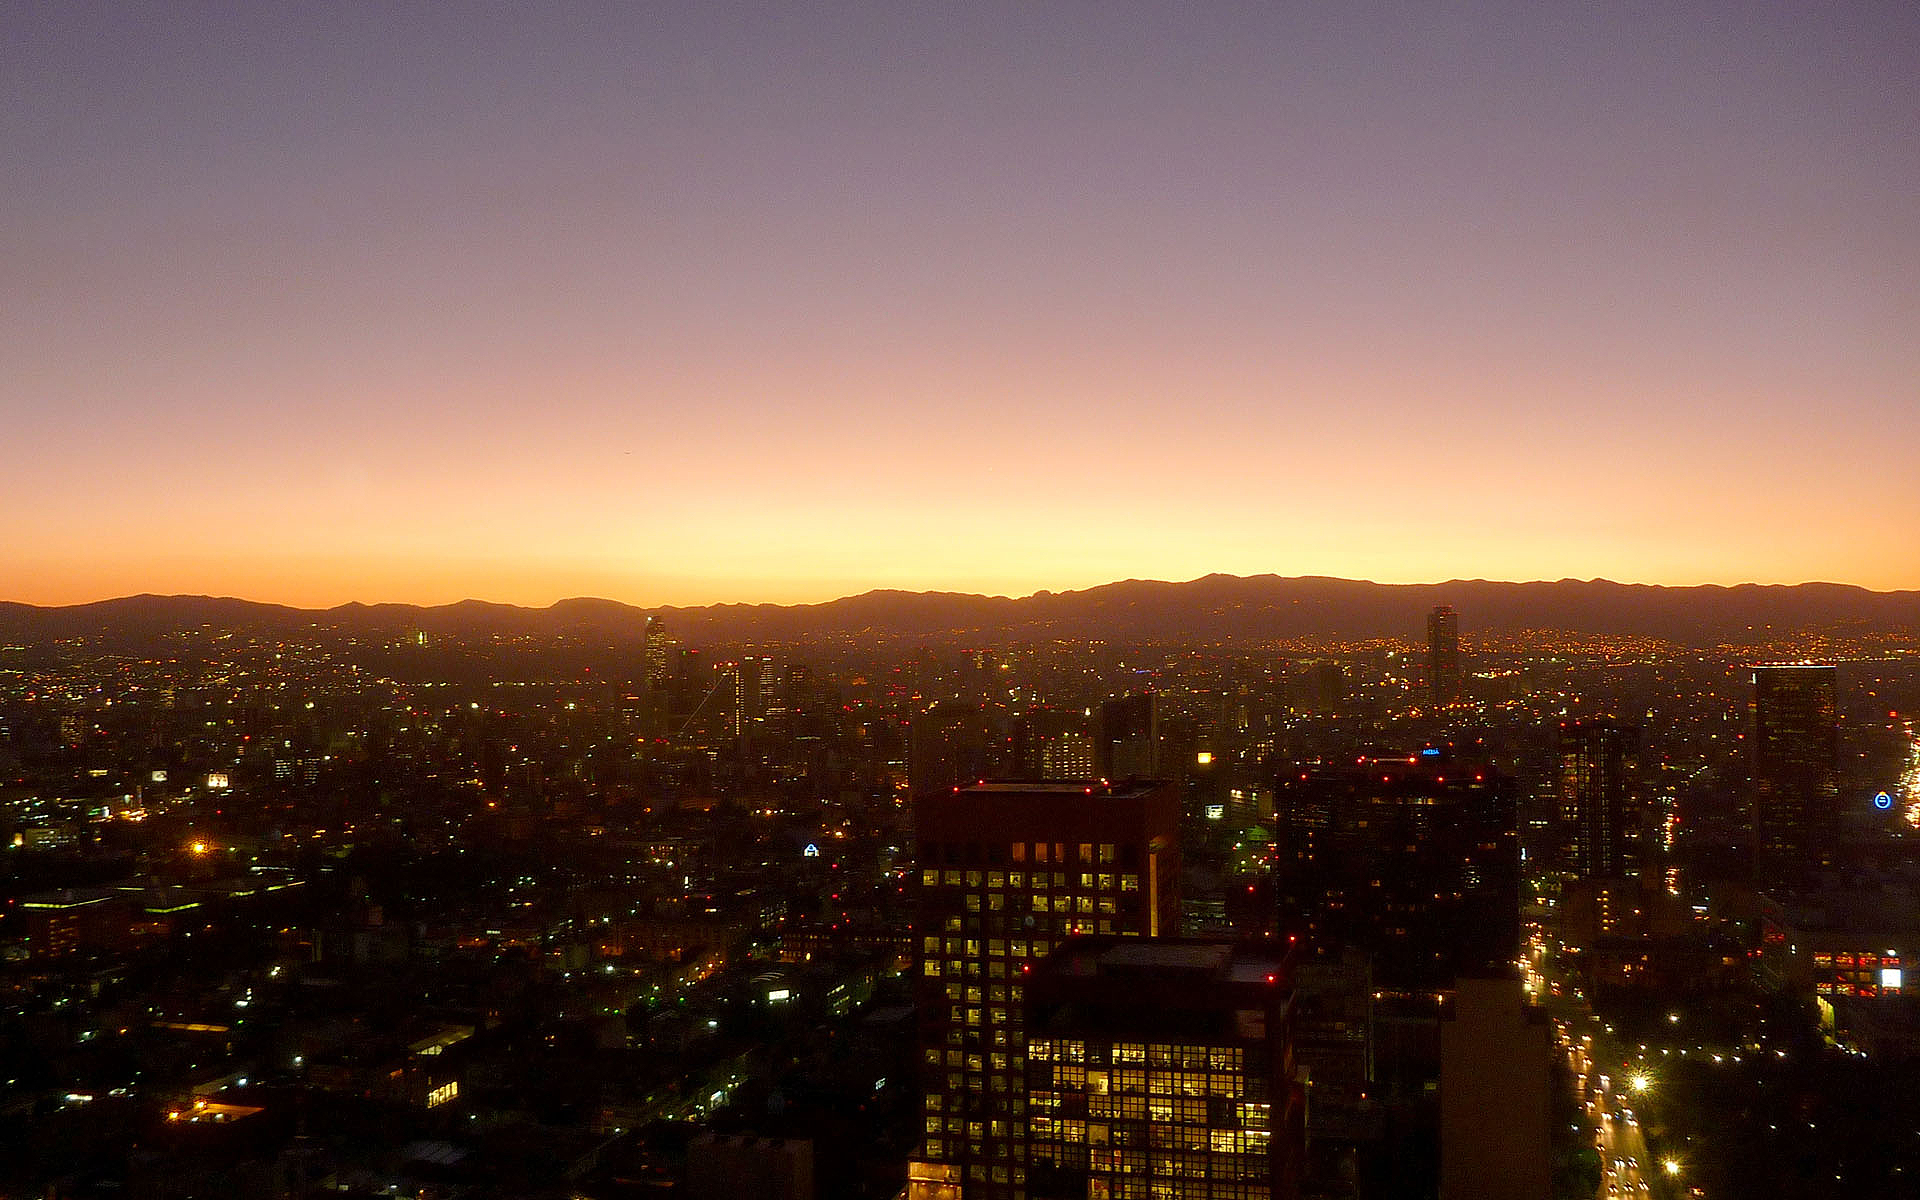 A work by Does - 2851897-mexico-city-wallpaper